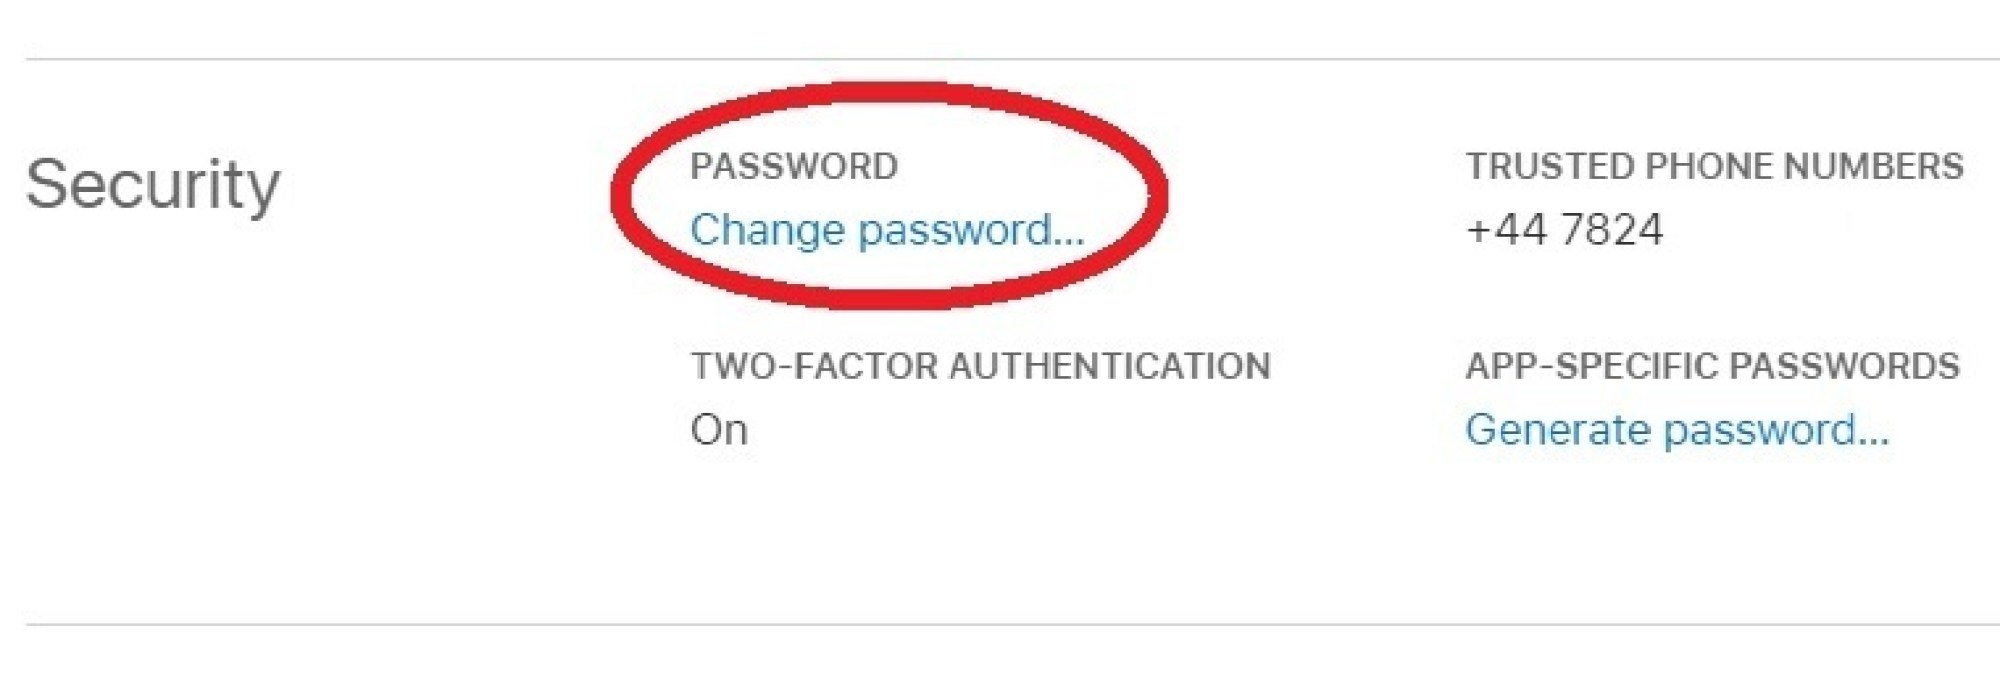 Don't forget to enable two-factor authentication while you're here.